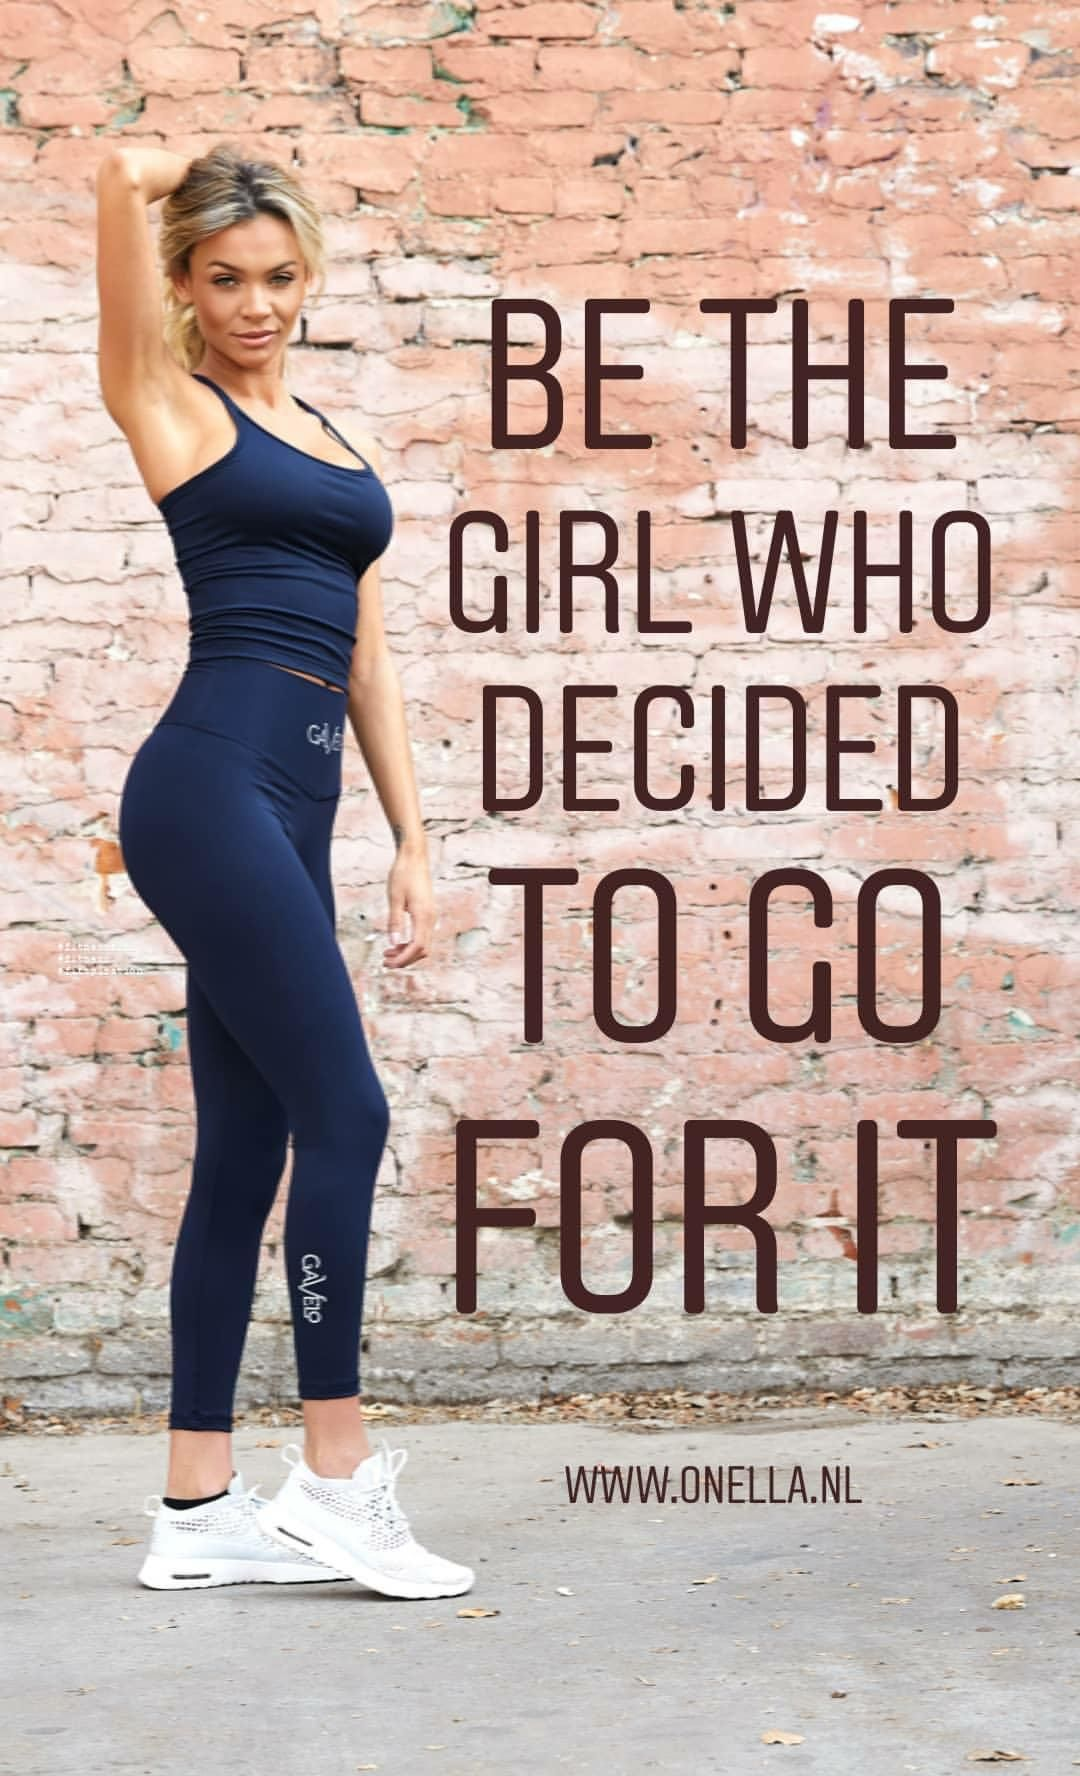 FITNESS QUOTES ONELLA SPORTSWEAR